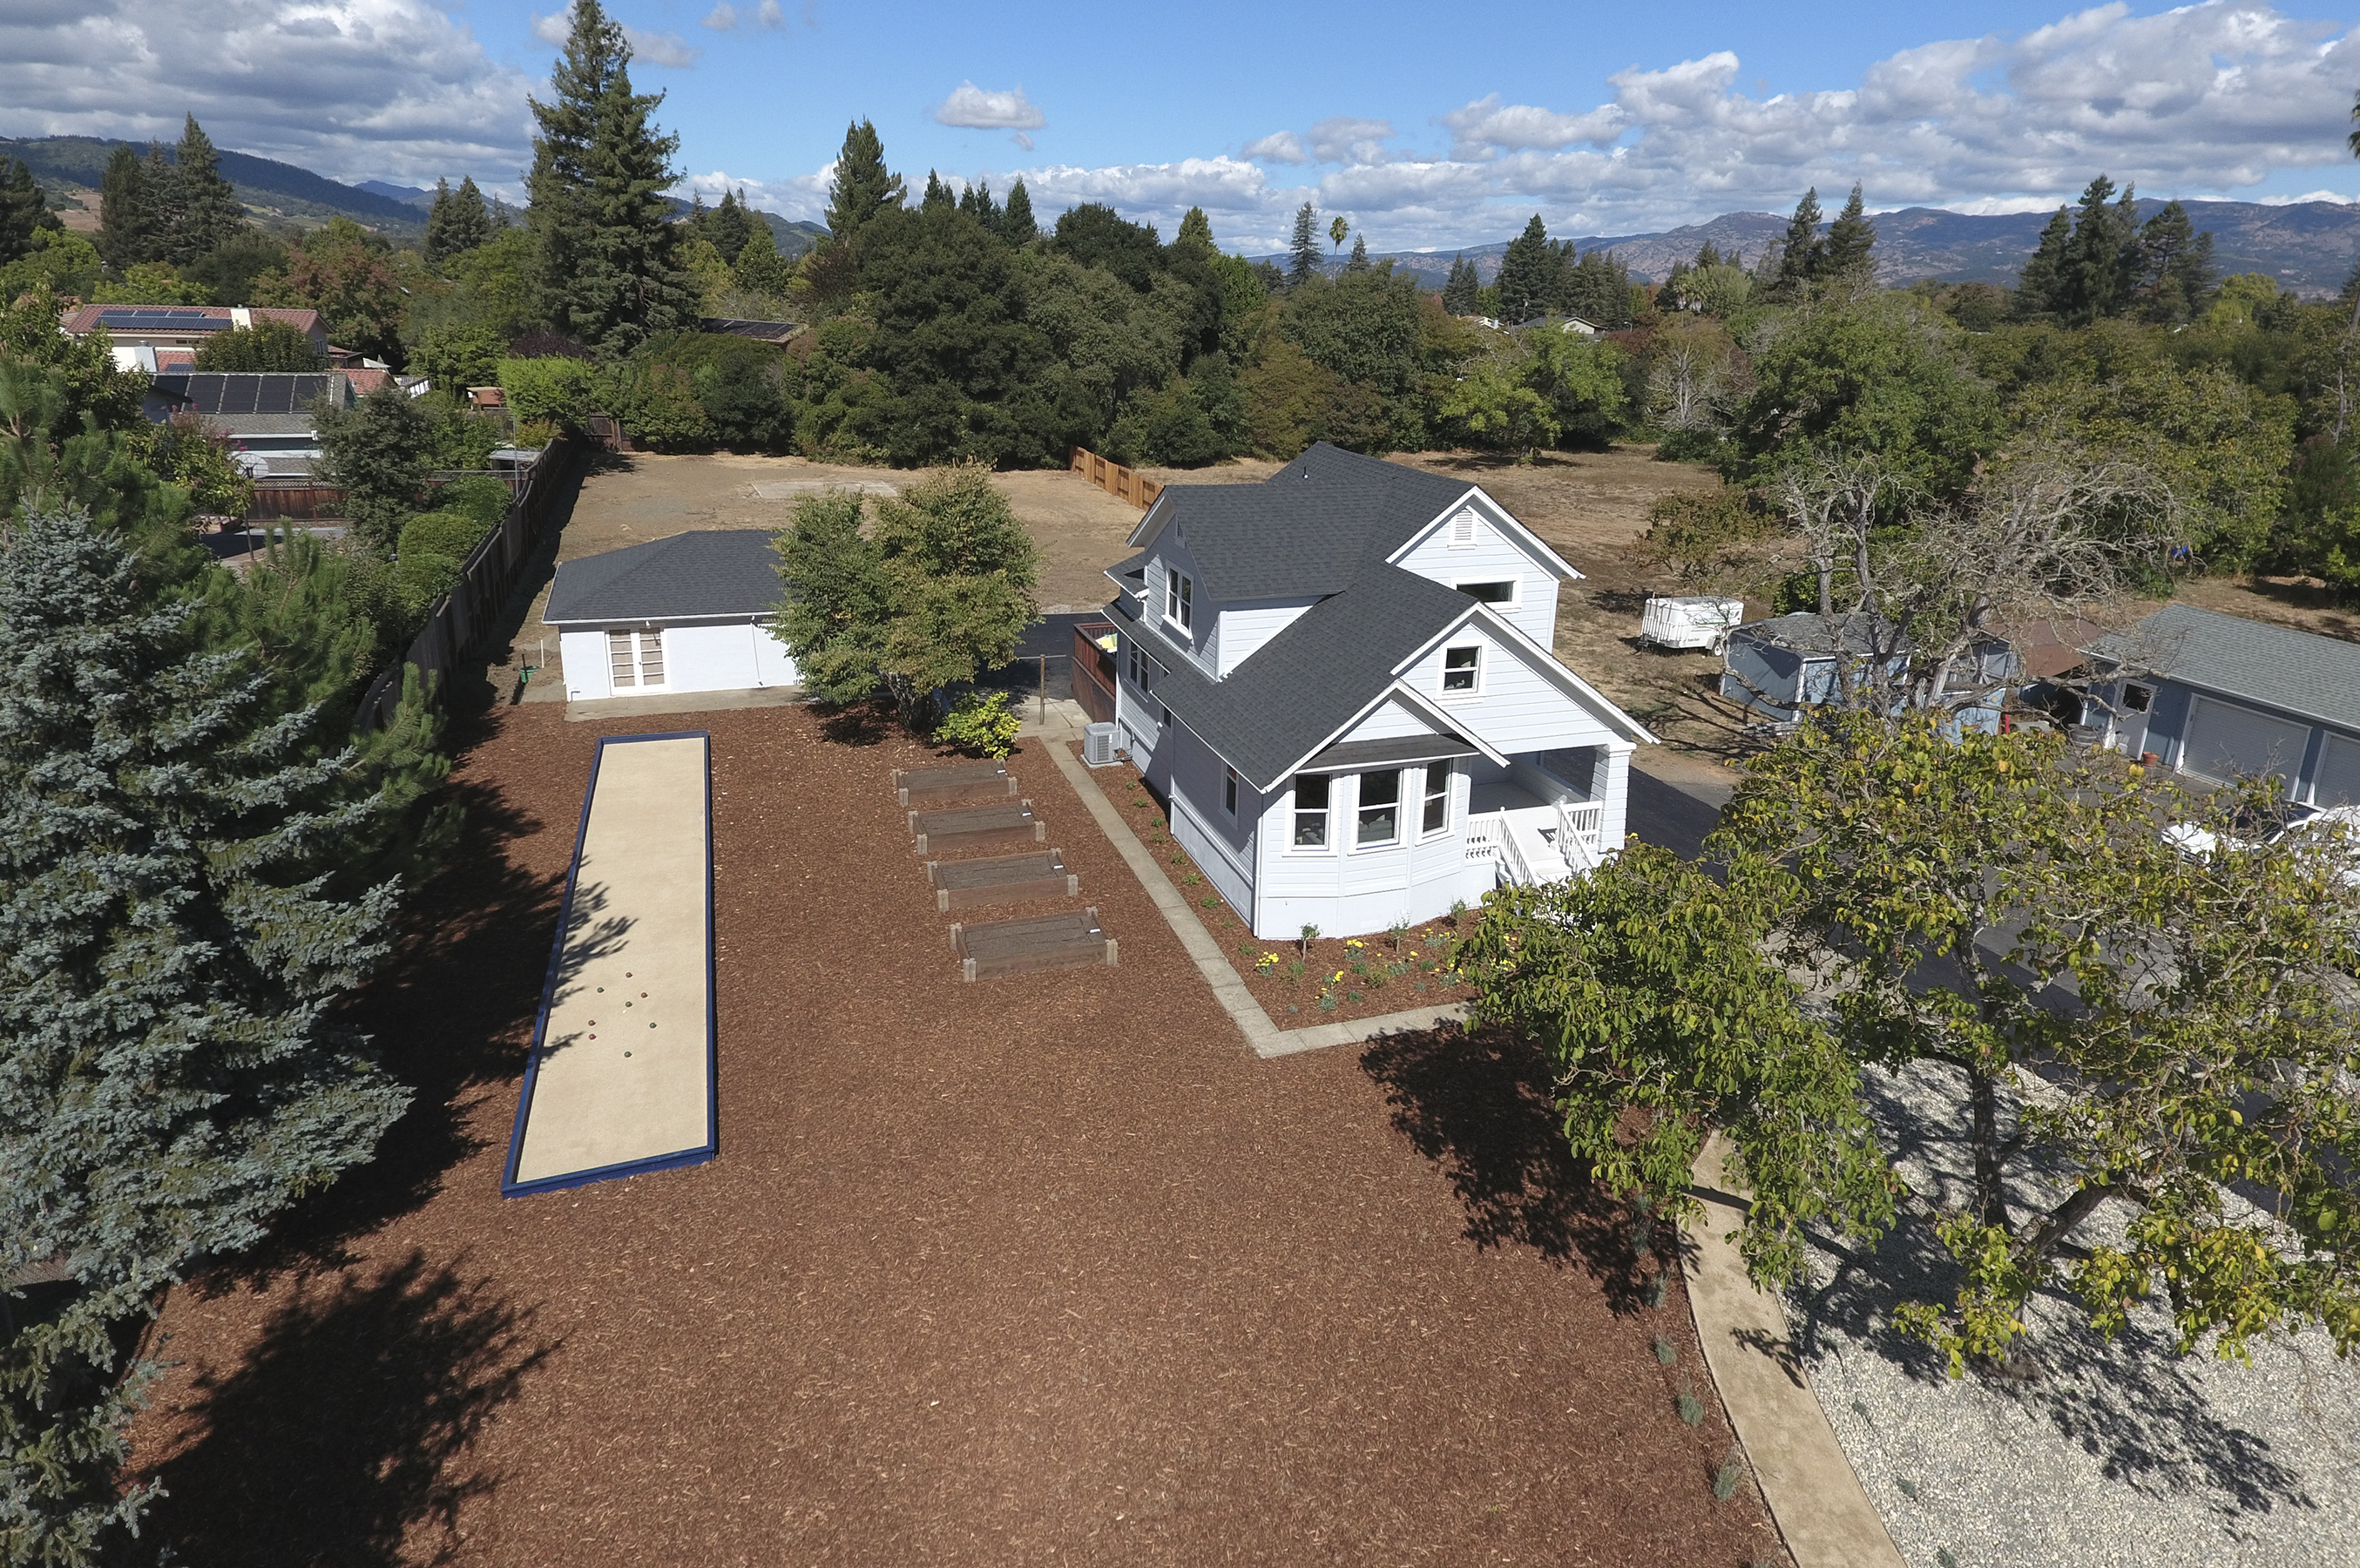 Single Family Home for Sale at 2588 Redwood Rd, Napa, CA 94558 2588 Redwood Rd Napa, California, 94558 United States